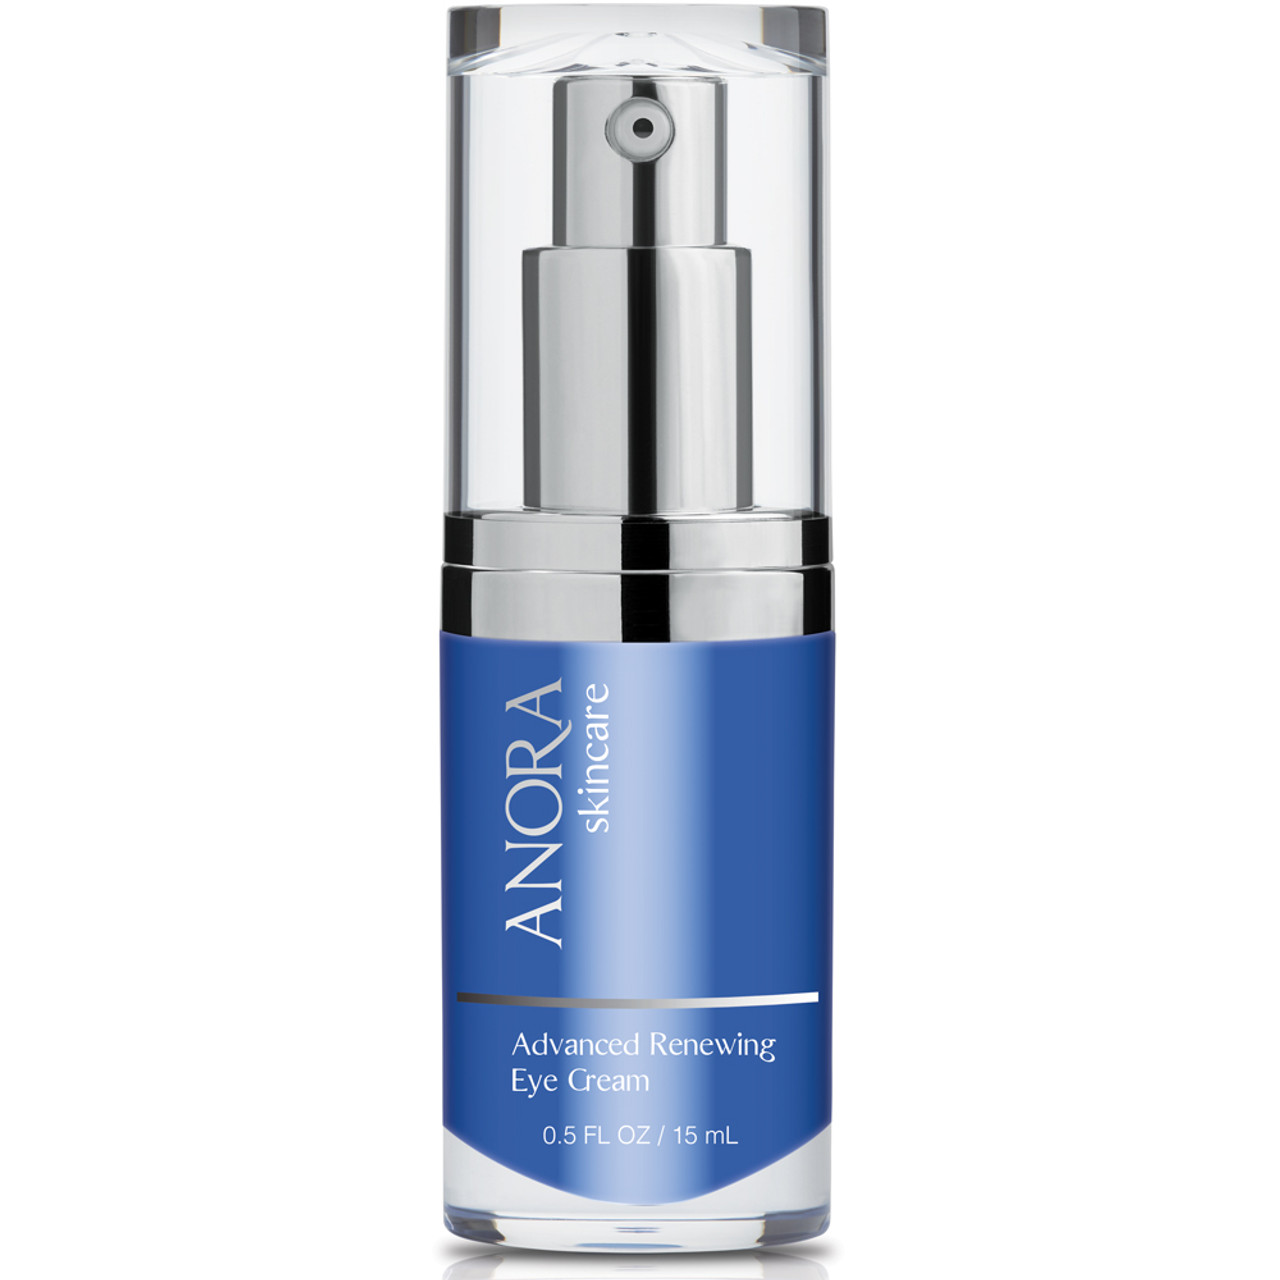 Anora Skincare Advanced Renewing Eye Cream - Front